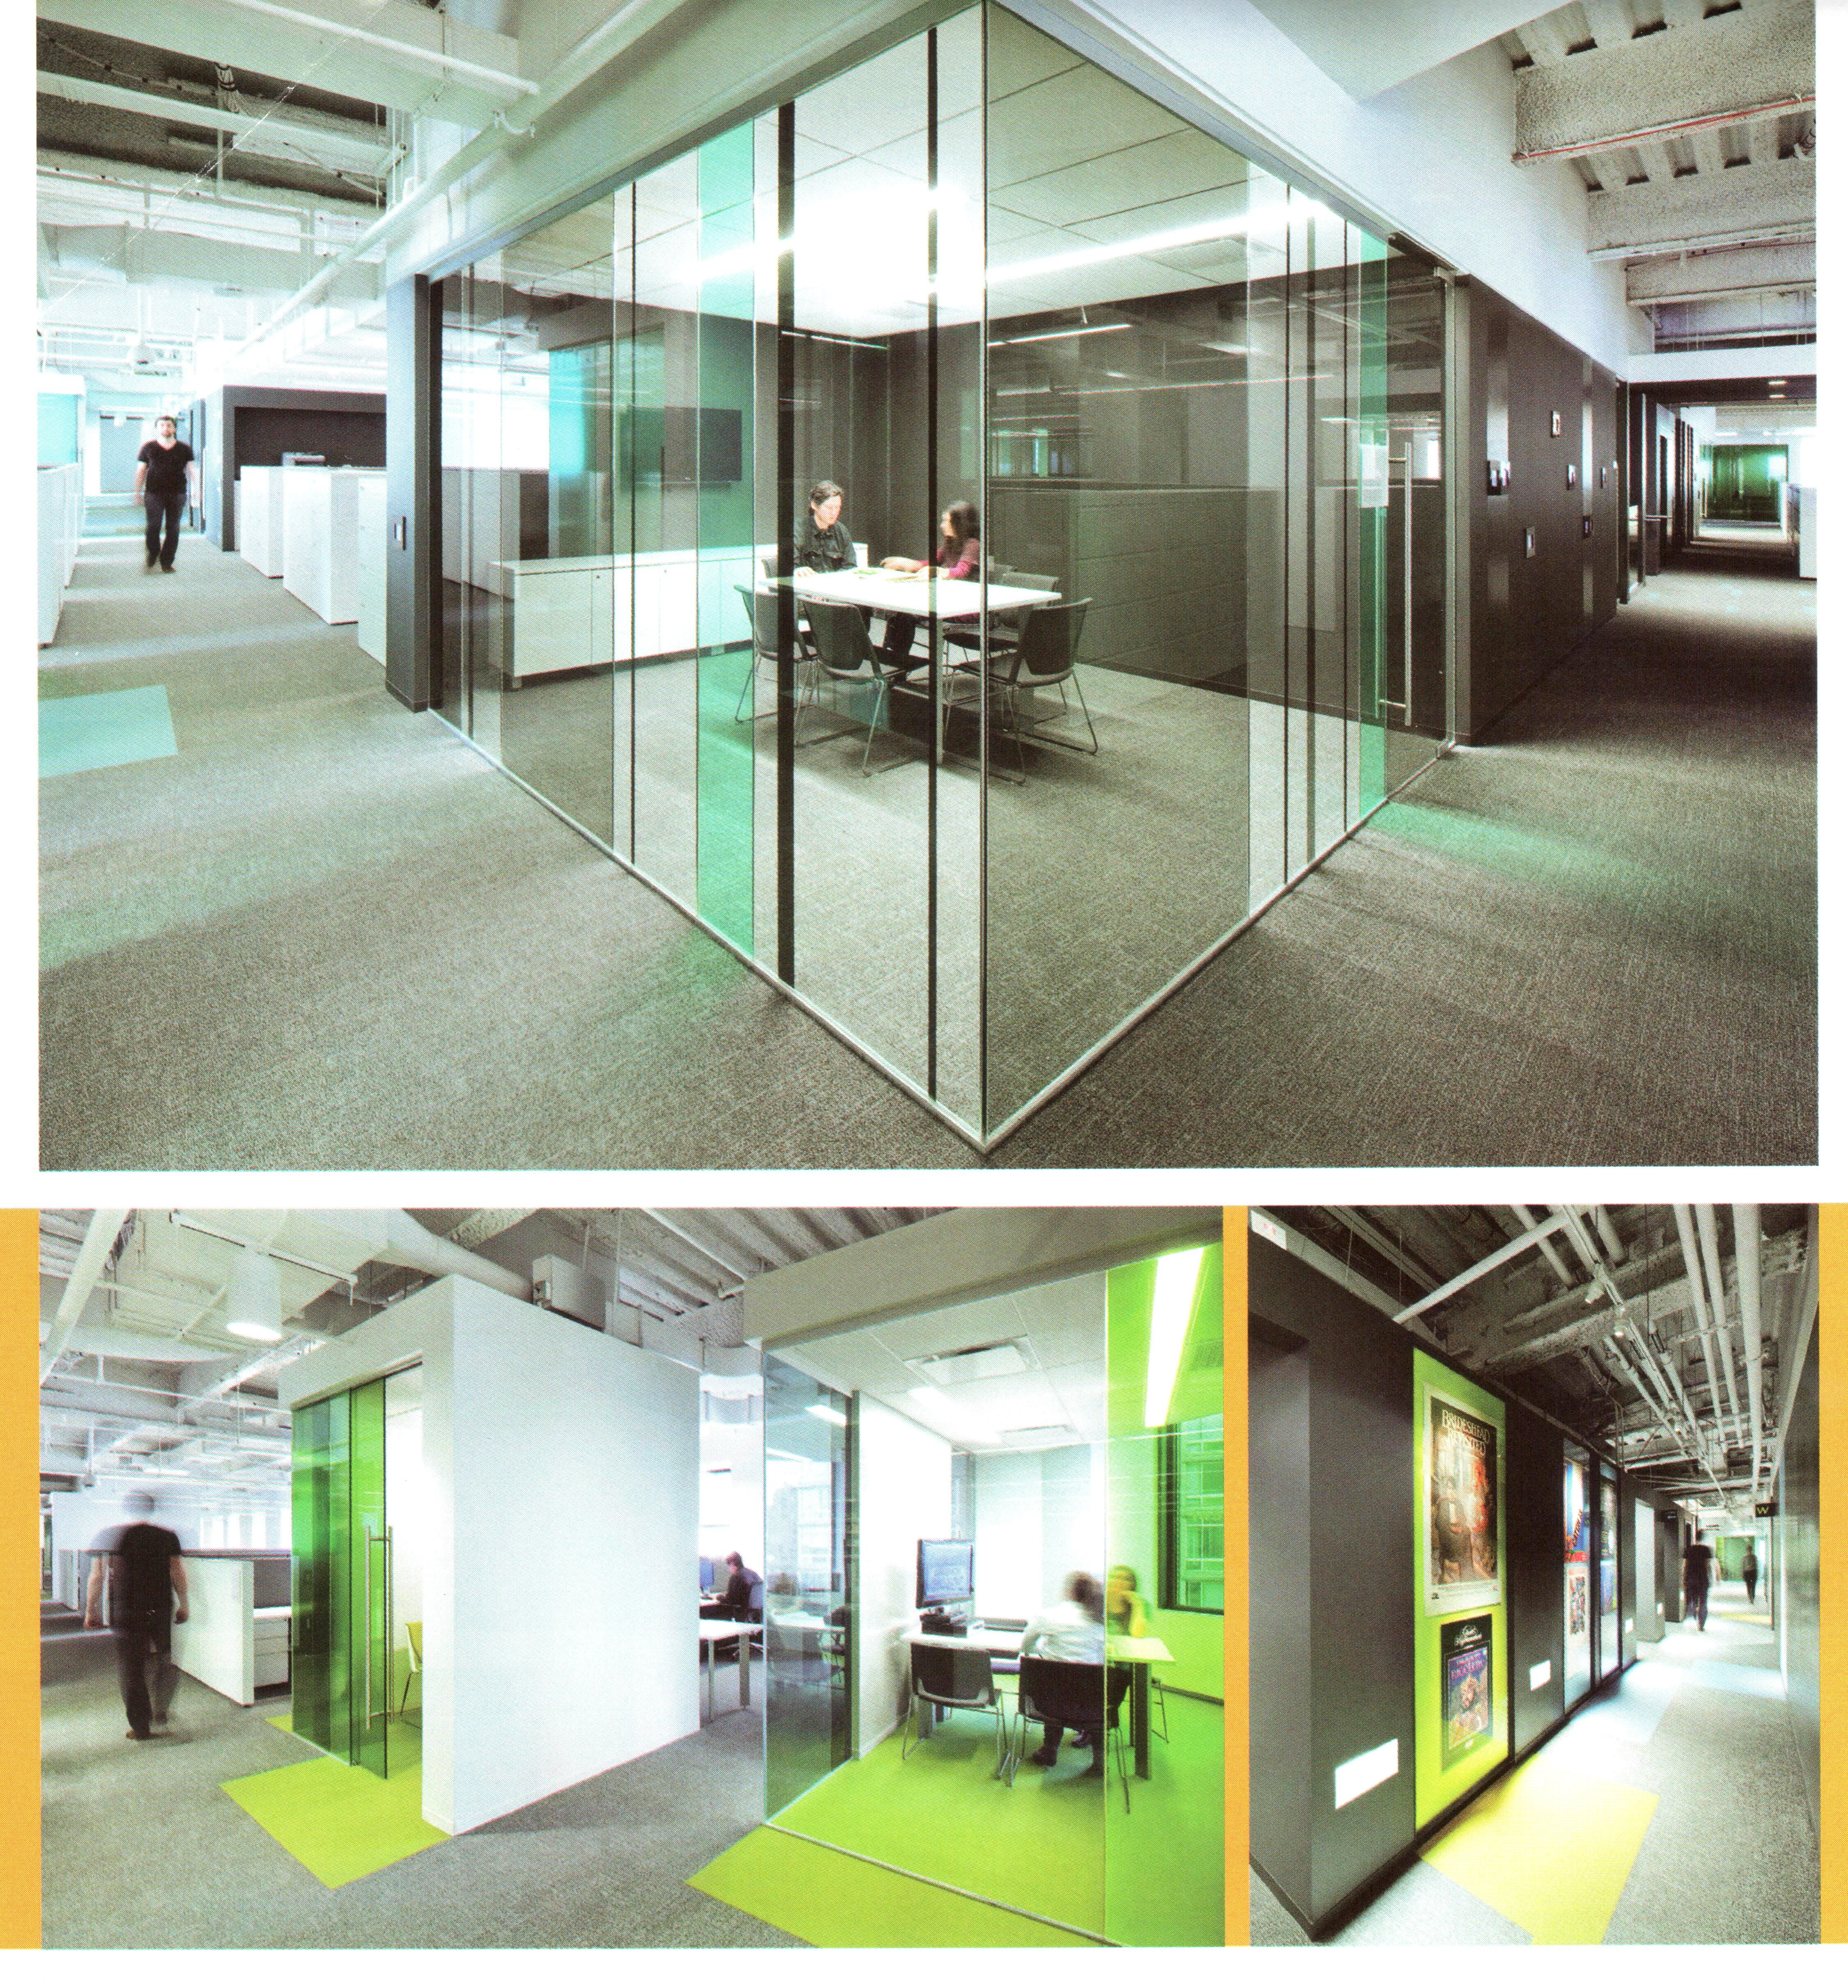 Glass partitions with tinted film interiores pinterest for Oficinas decoracion interiores